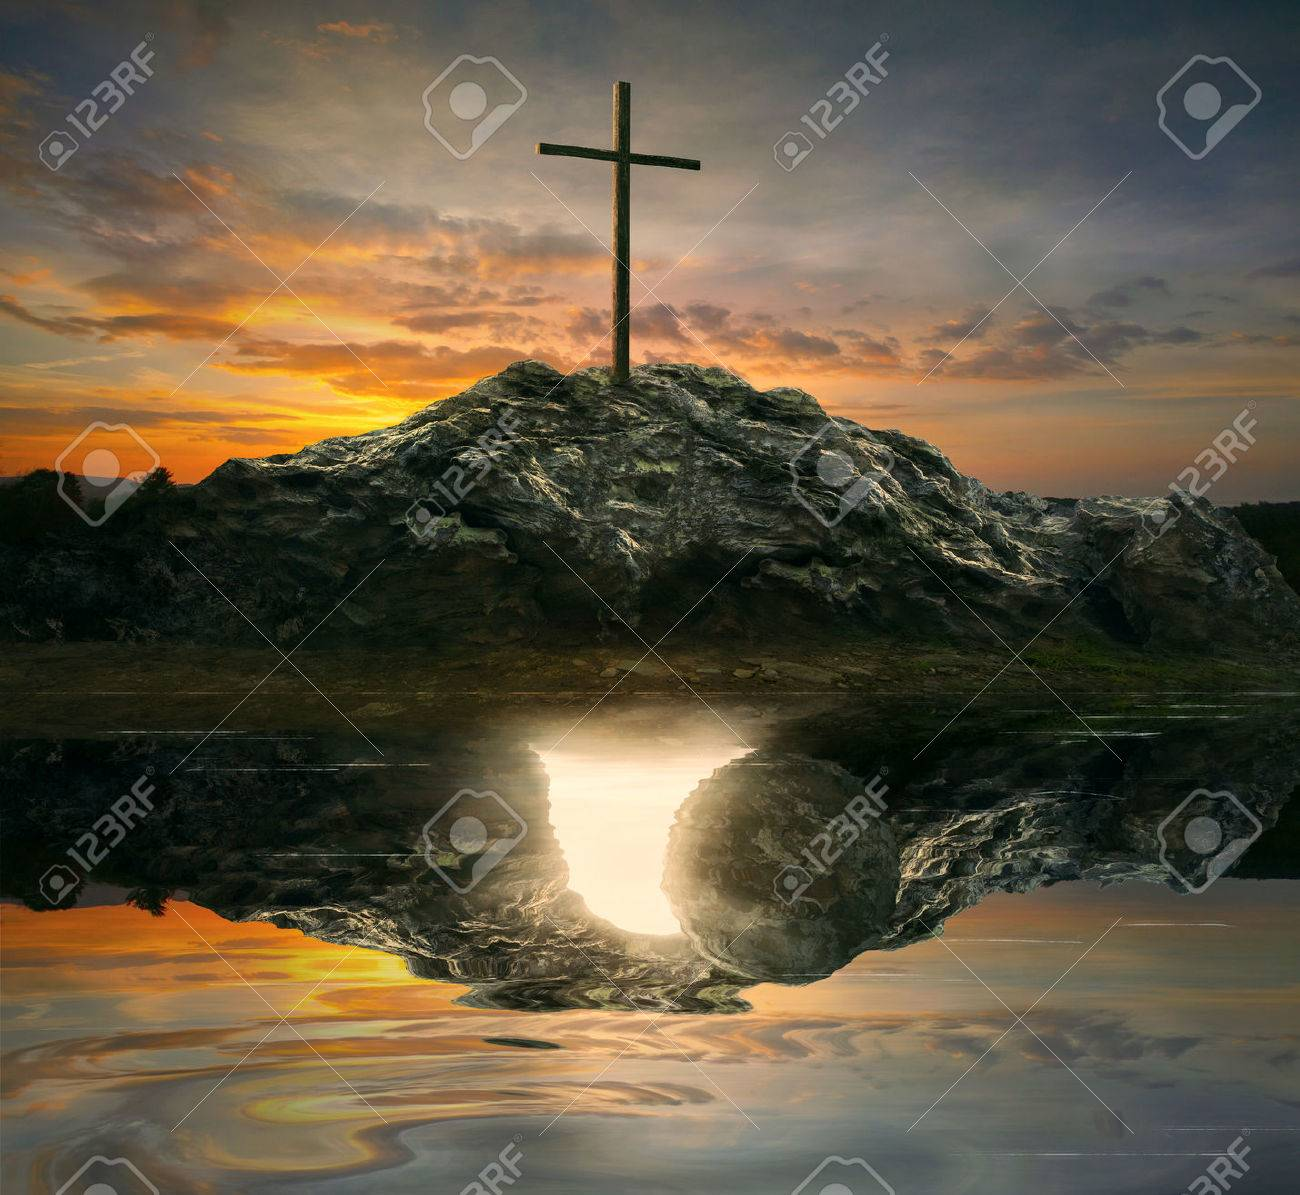 A single cross with the reflection of an empty tomb. - 57203763